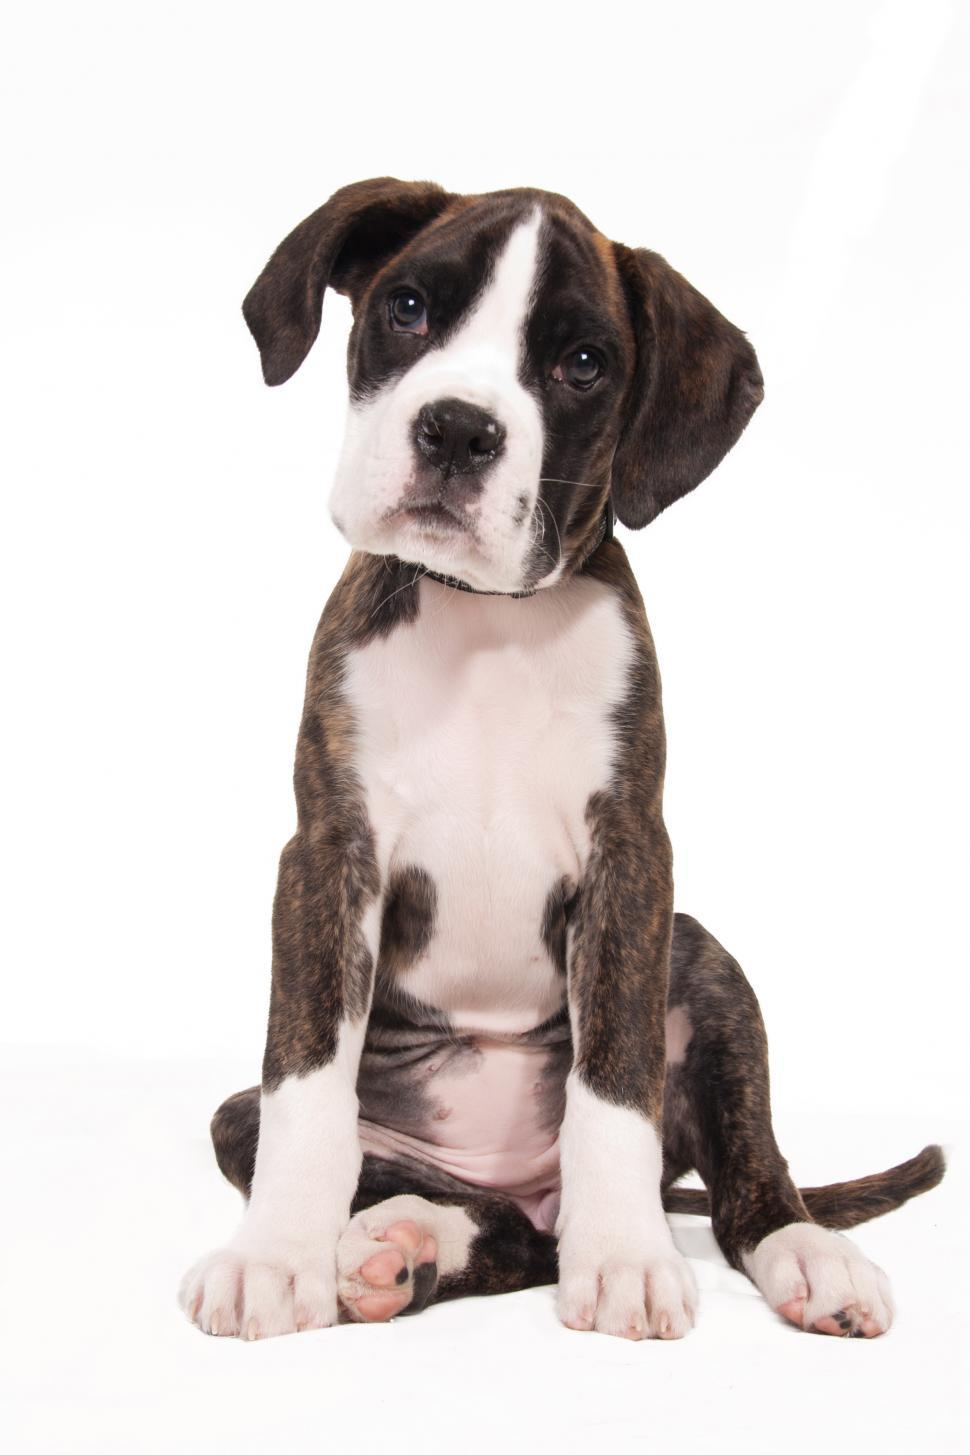 Download Free Stock HD Photo of boxer dog puppy, isolated over white background Online